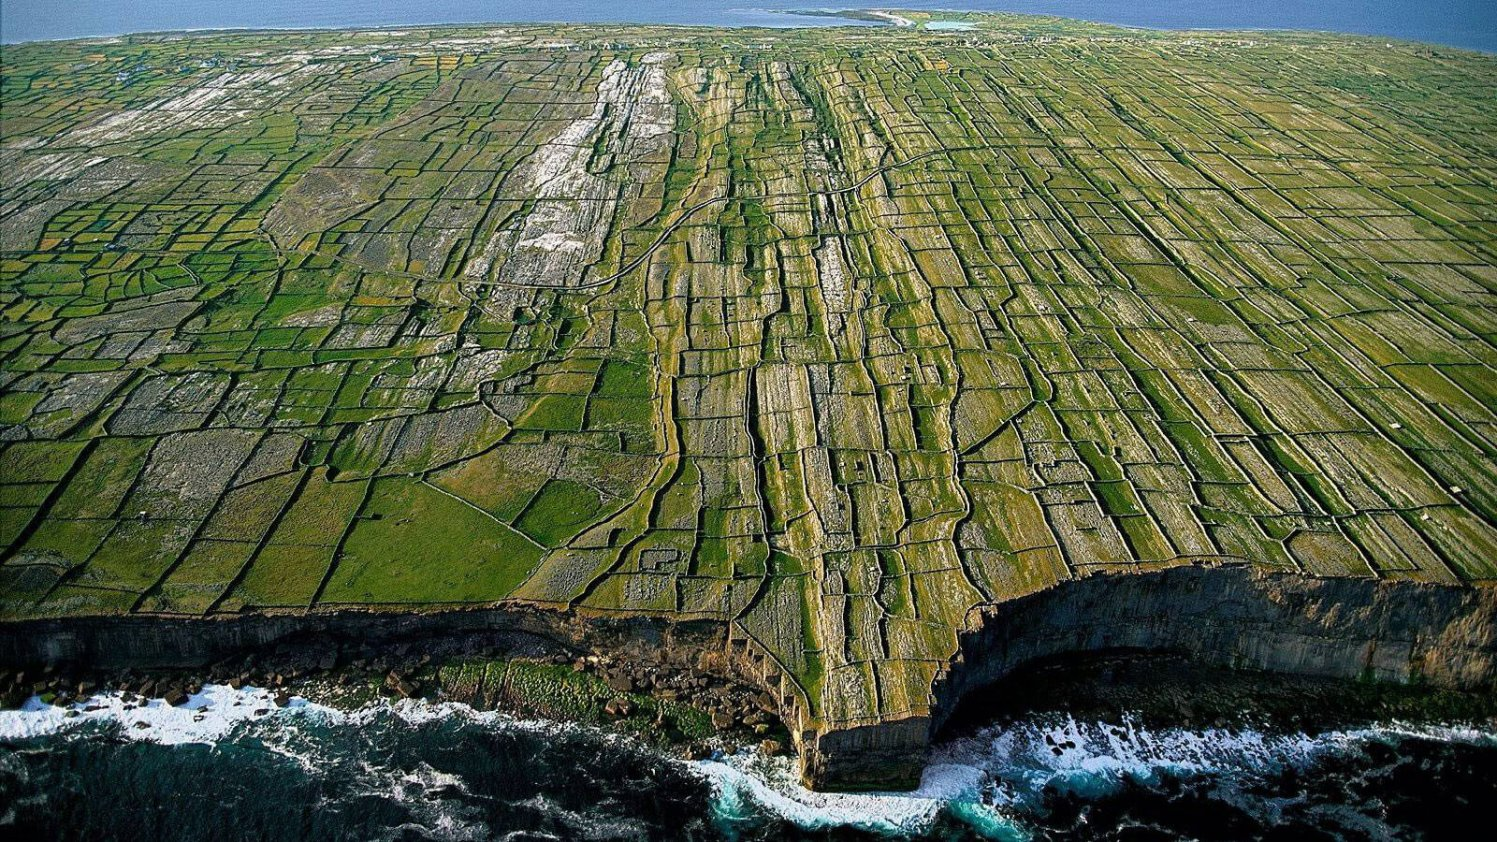 Aerial view of patchwork fields and dry stone walls on one of the Aran islands, Ireland